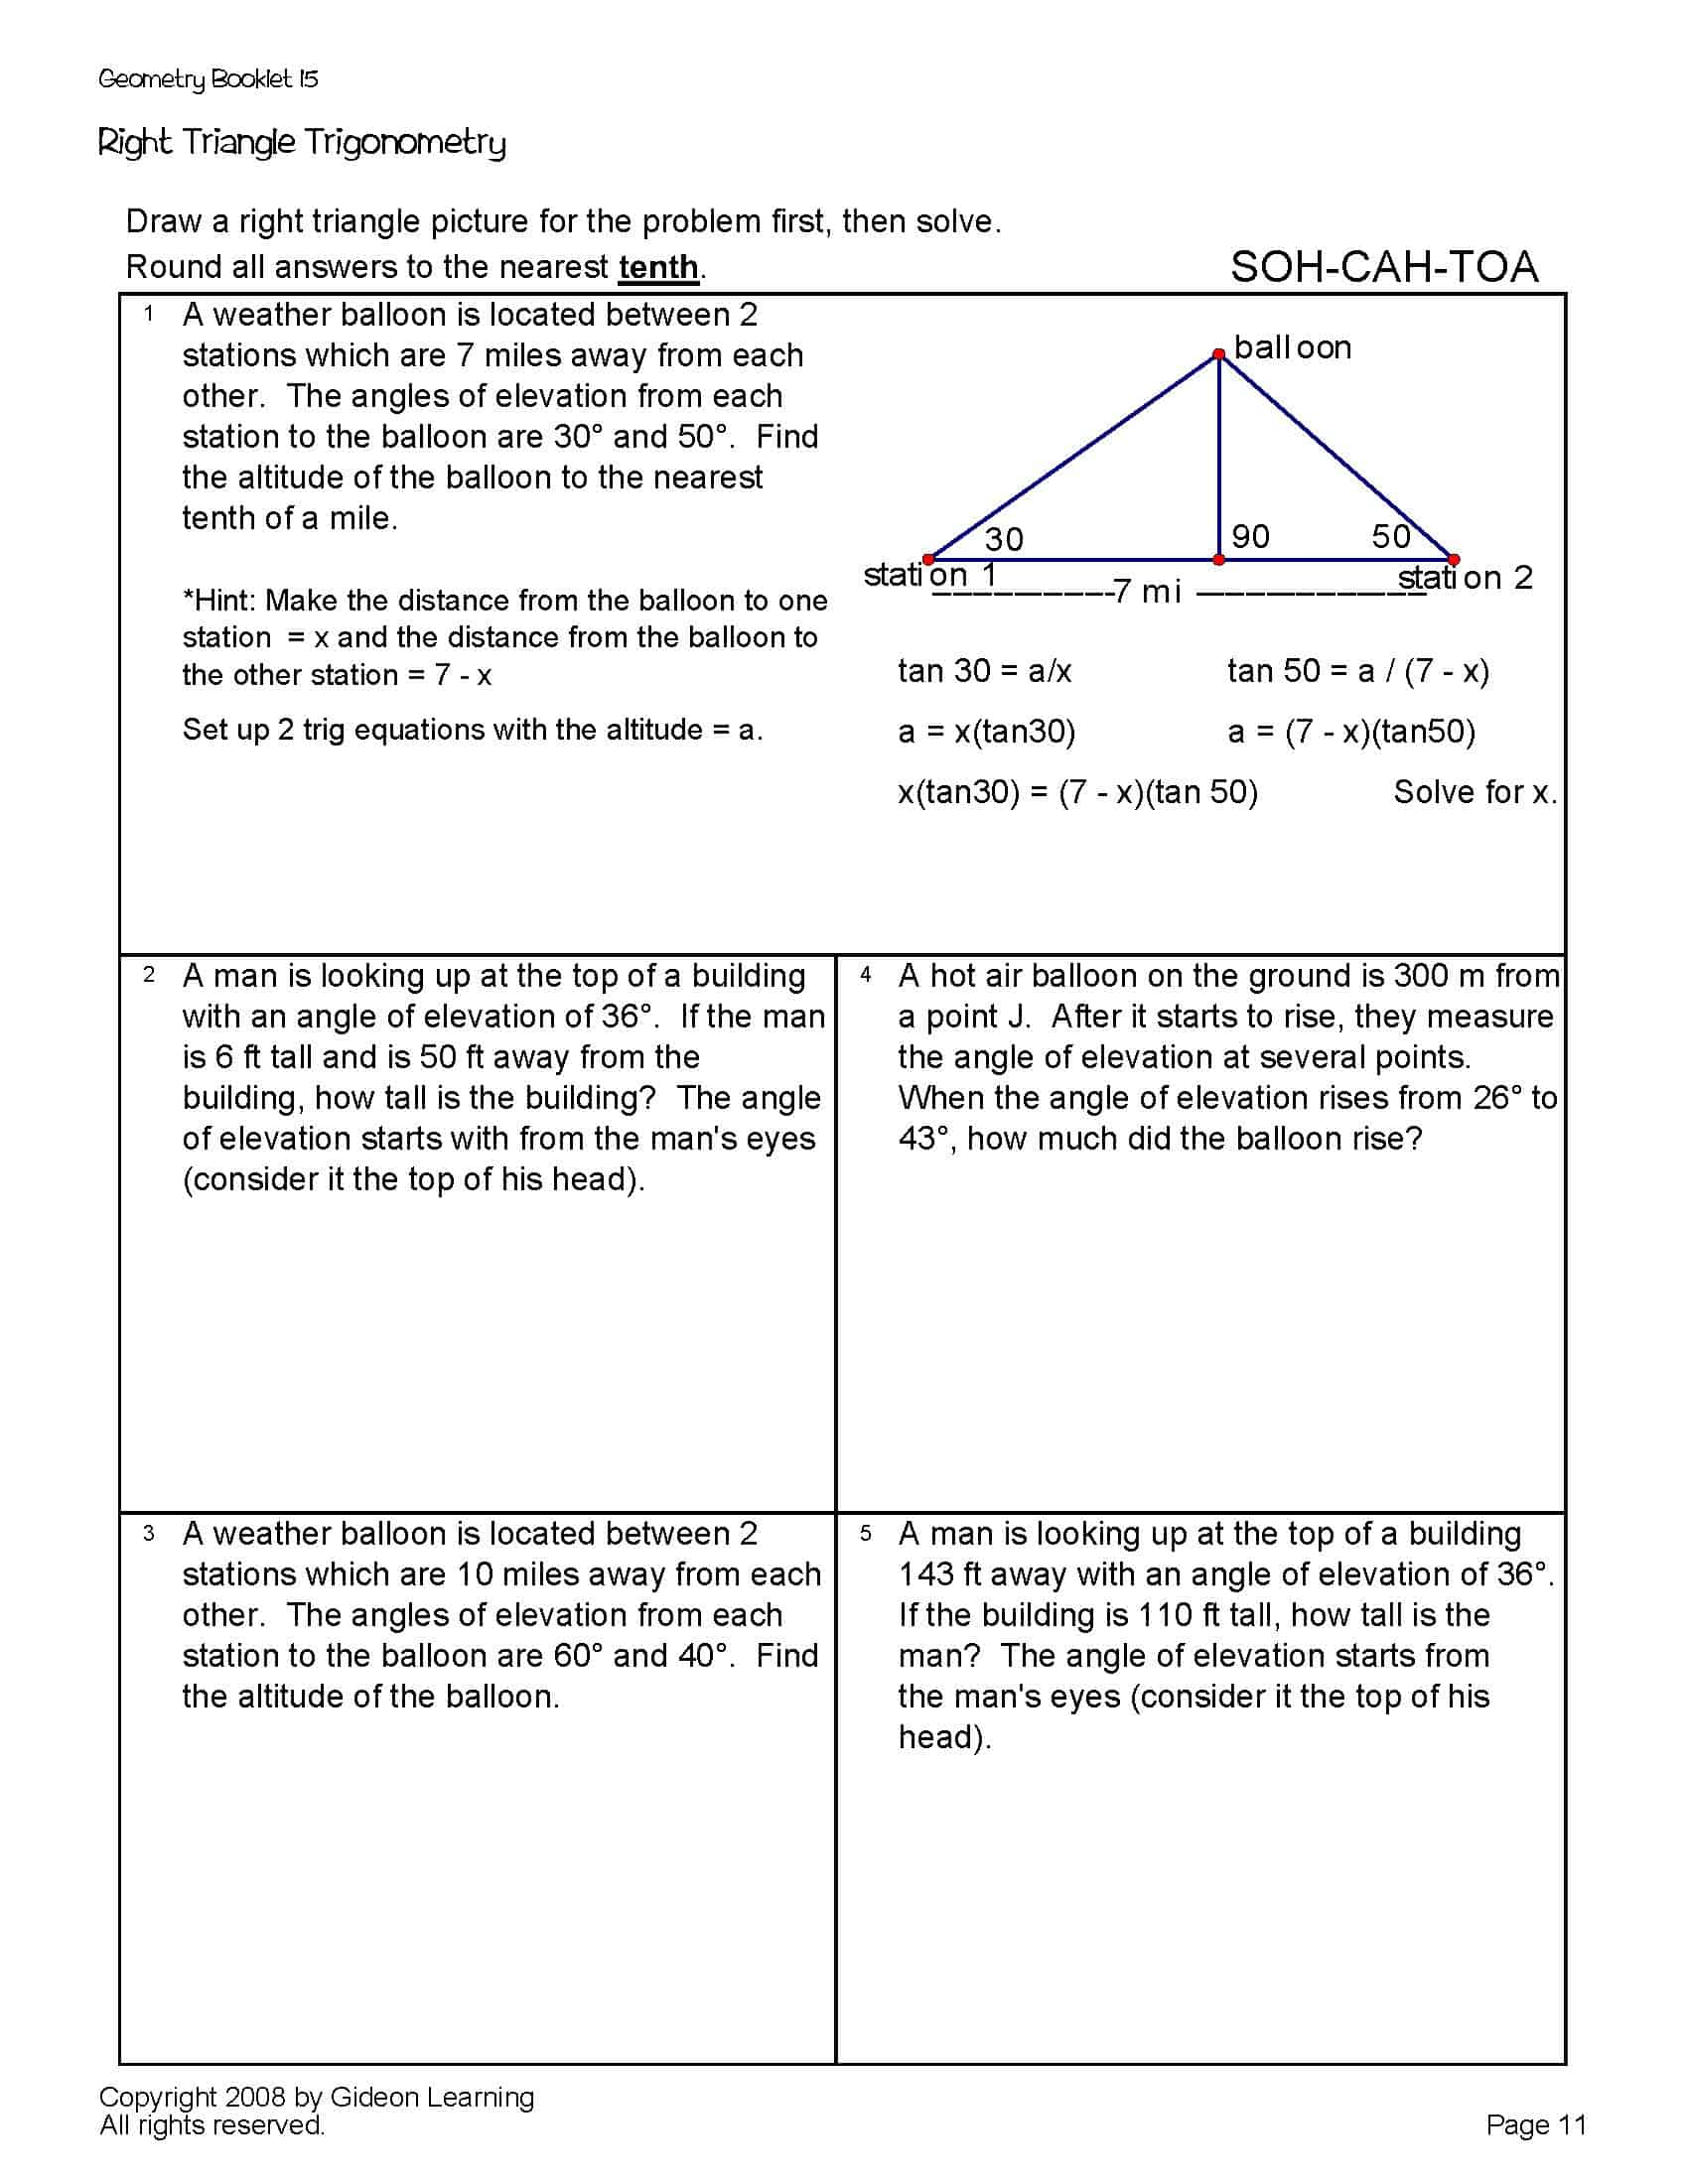 Right Triangle Trig Geometry